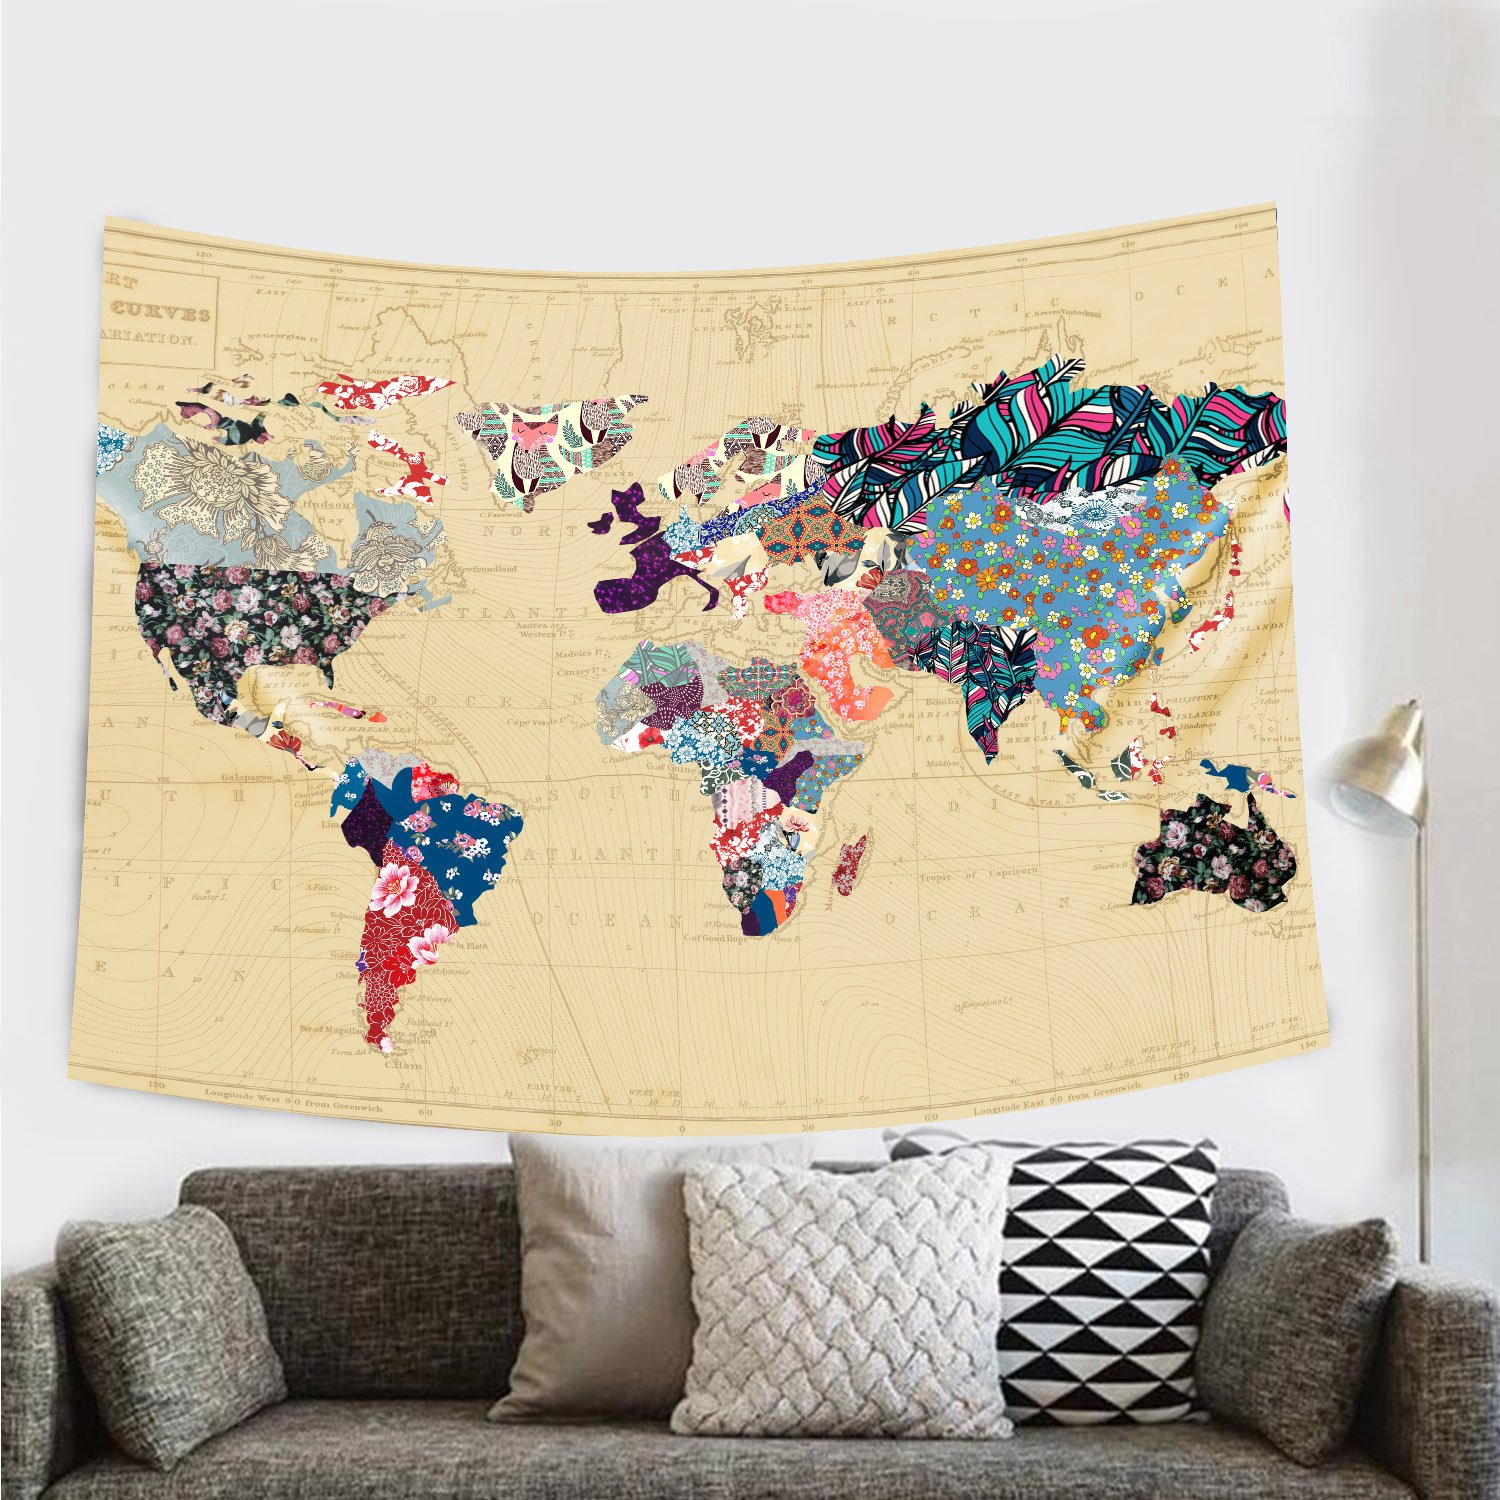 Amazon.com: Bonnie Bone Floral Watercolor World Map Tapestry ...